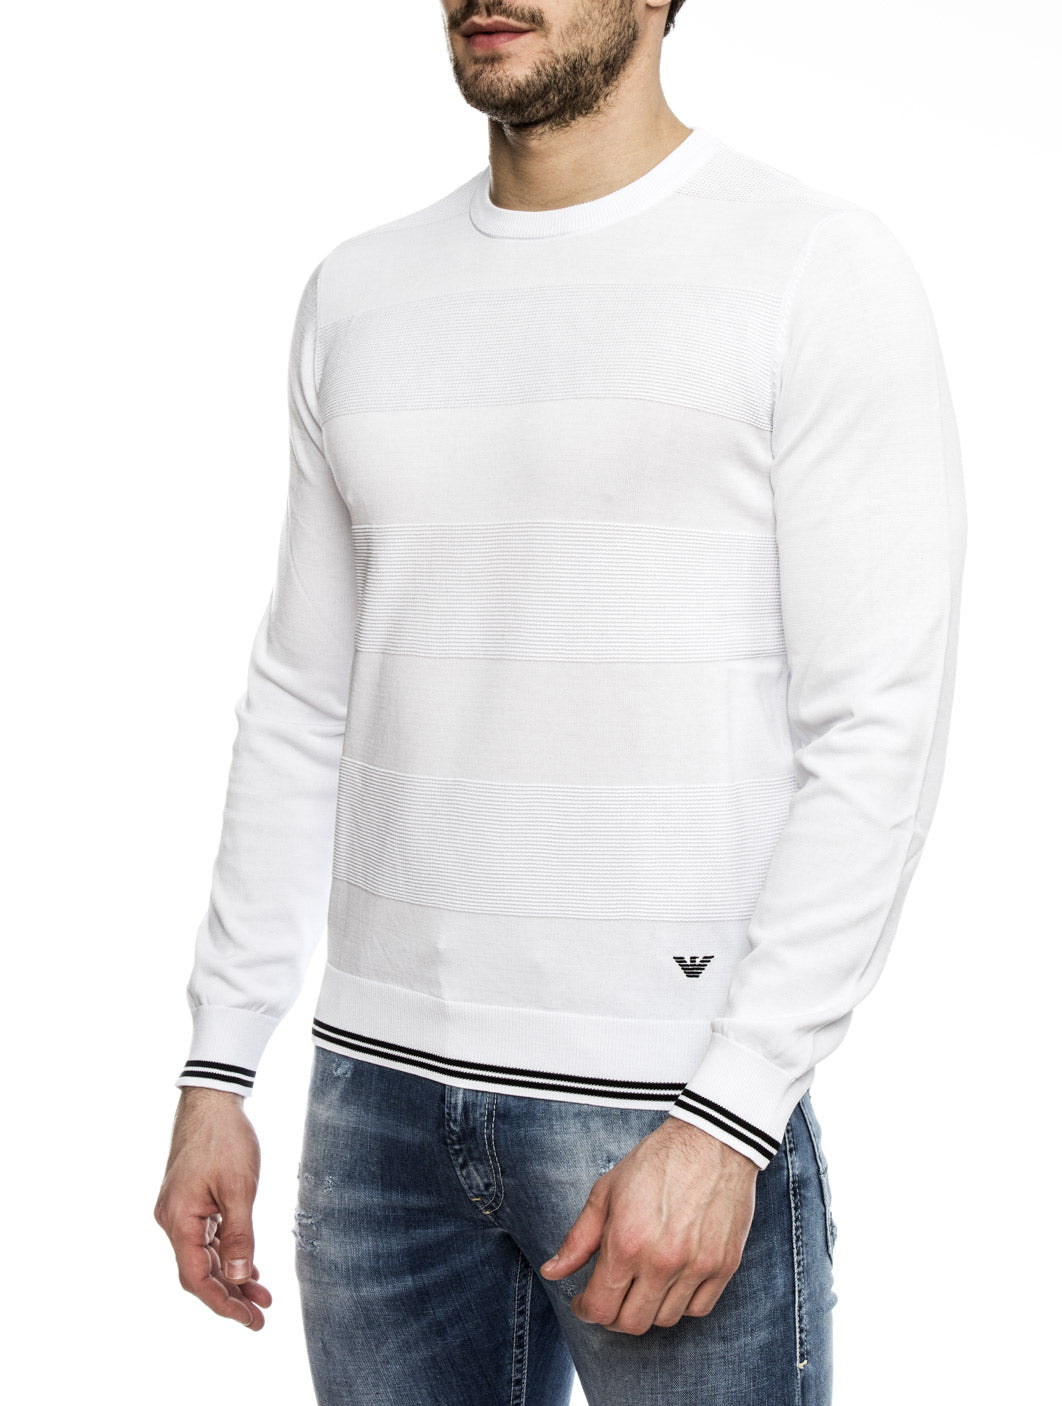 MAN KNITWEAR PULLOVER IN OPTICAL WHITE